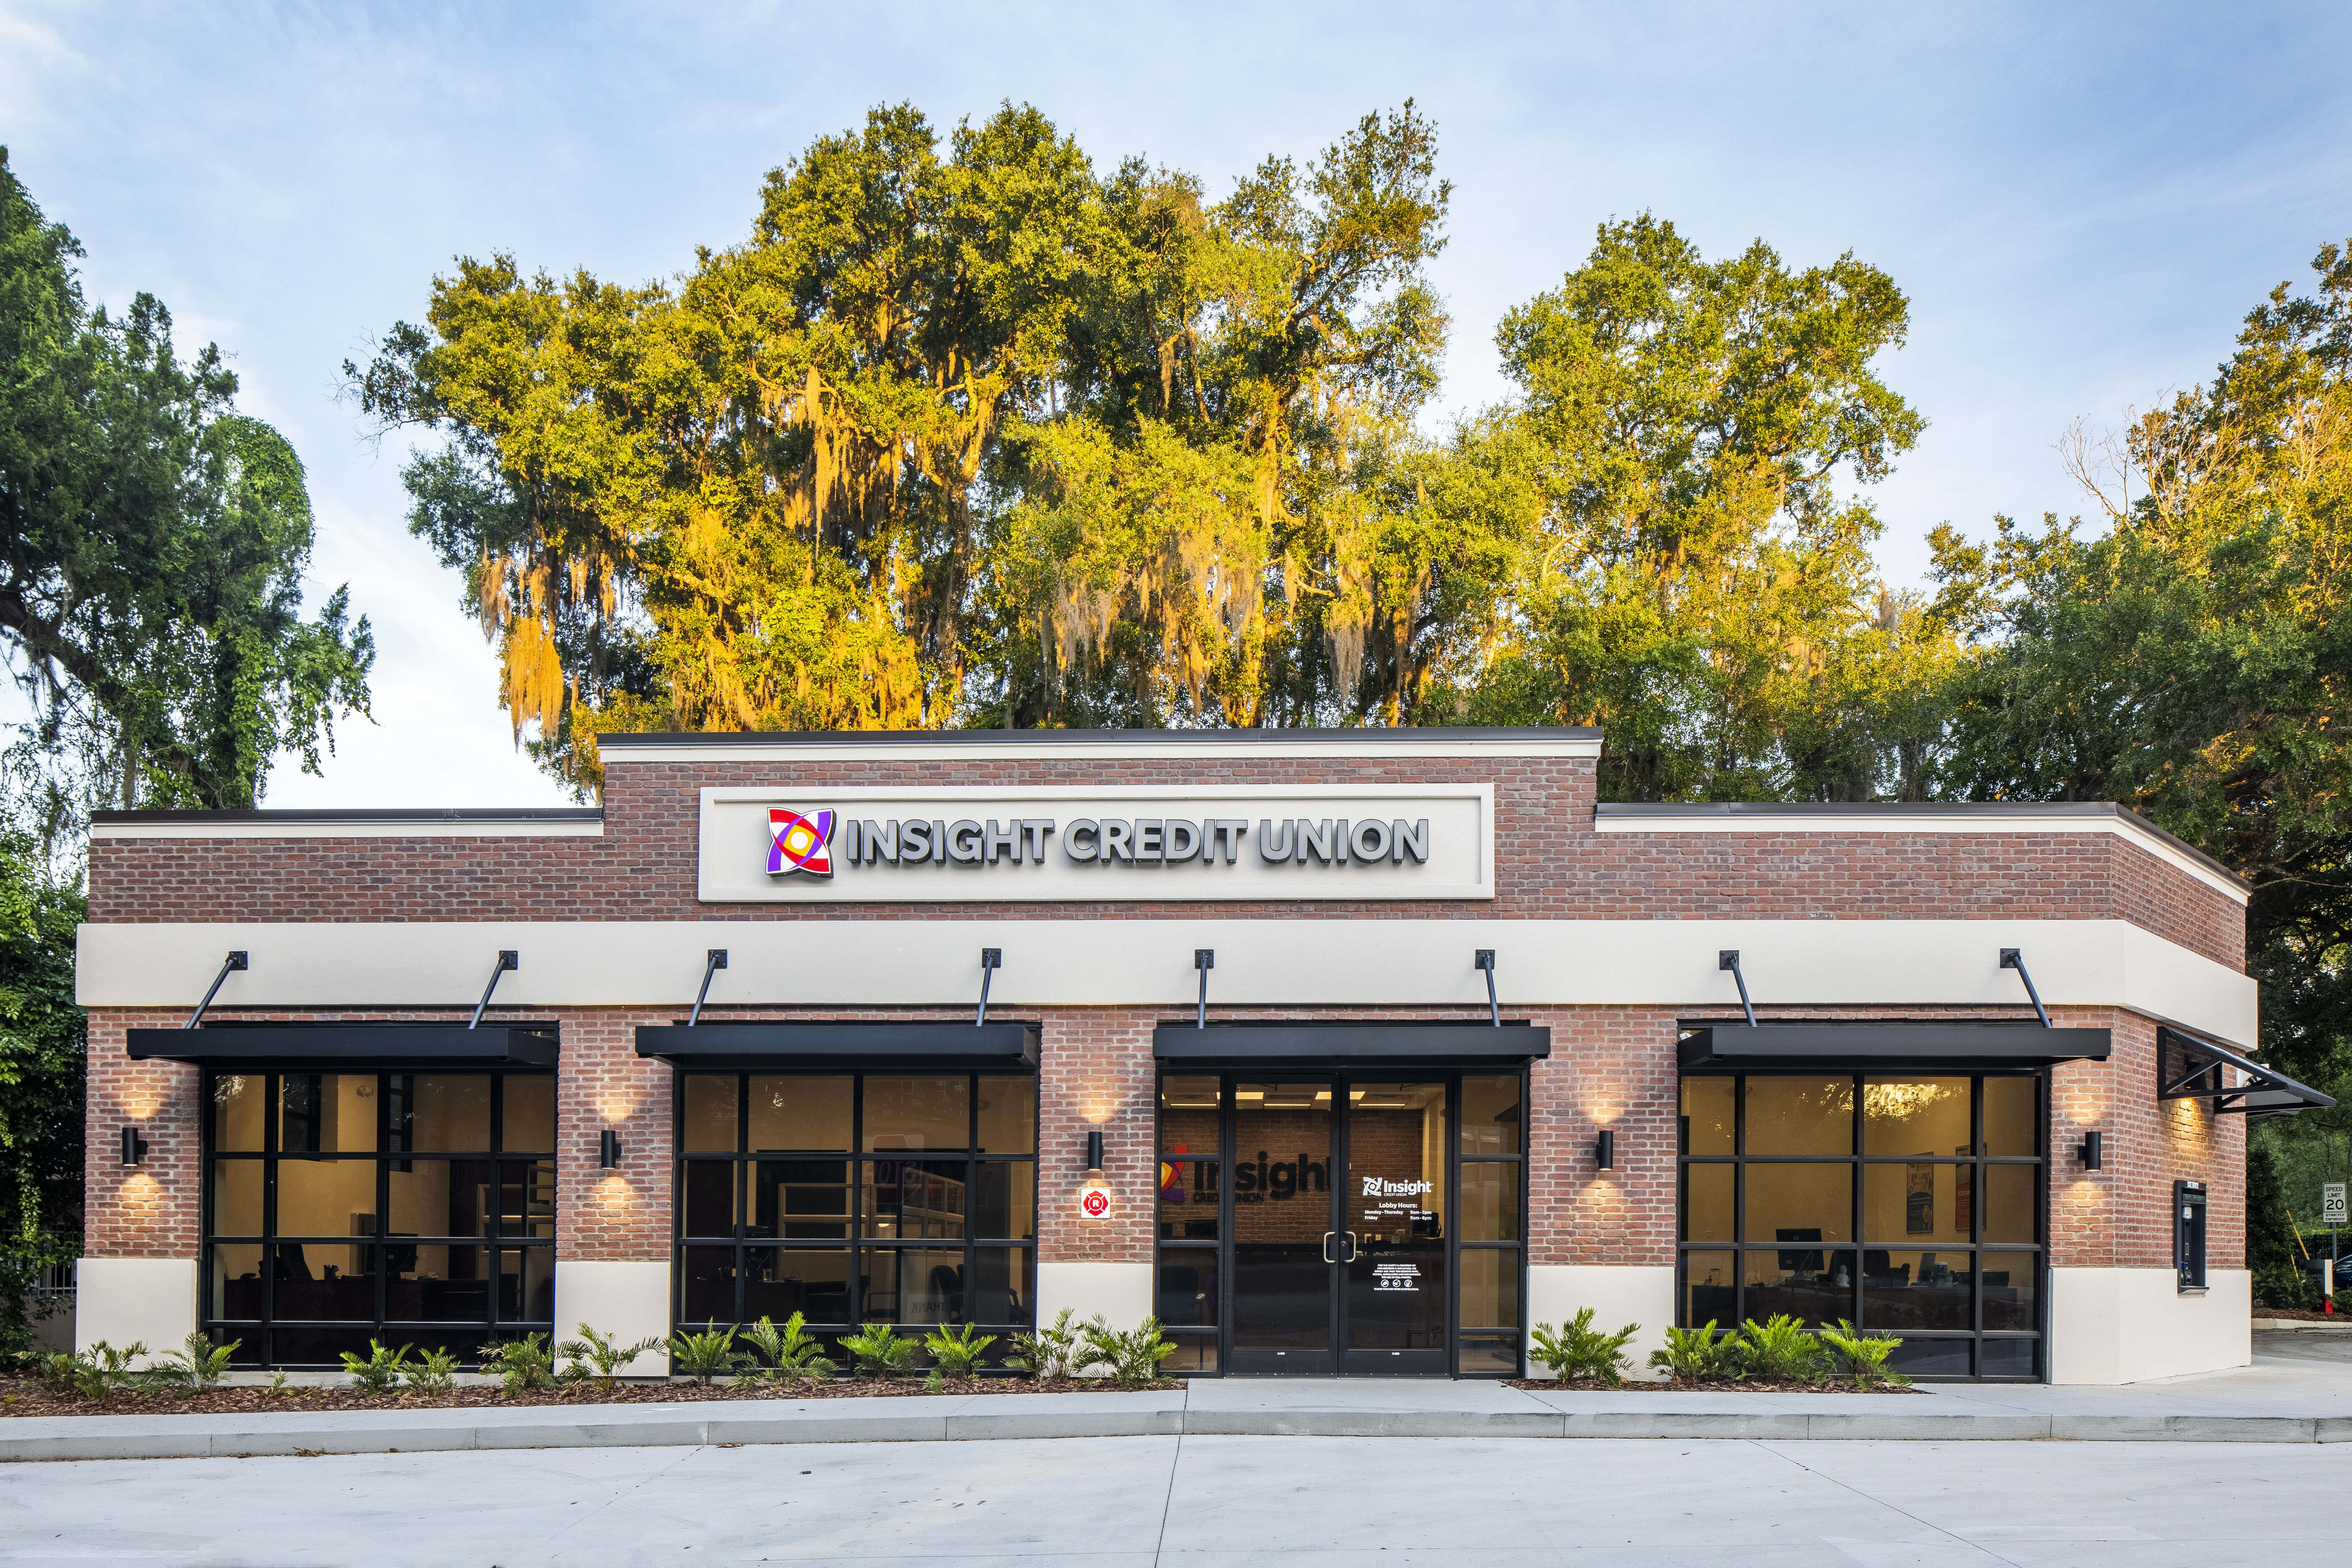 Insight Credit Union Front View